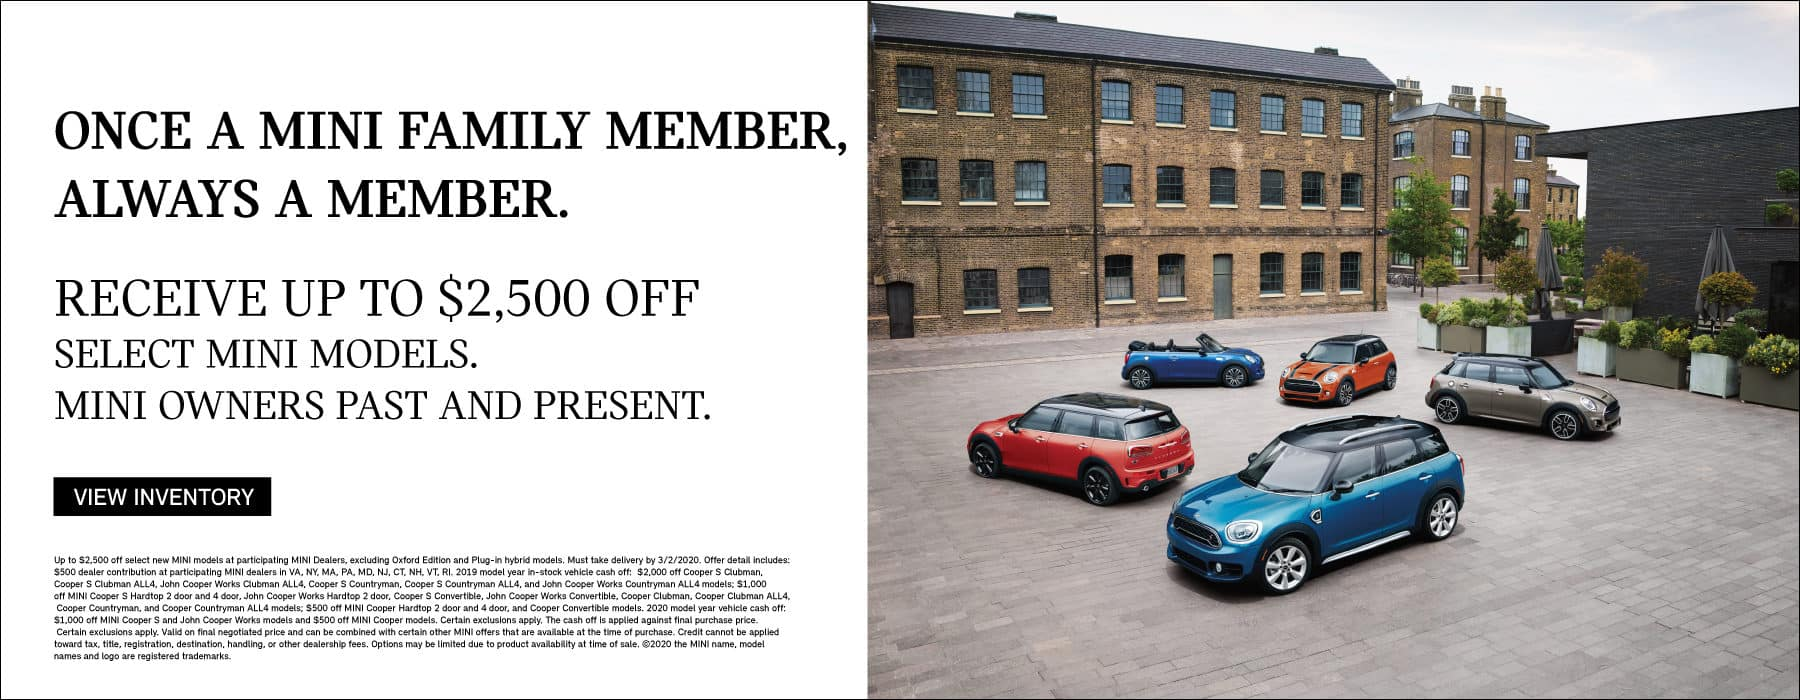 ONCE A MINI FAMILY MEMBER, ALWAYS A MEMBER. Receive up to $3,000 off select MINI models. MINI owners past and present. Click to view inventory.